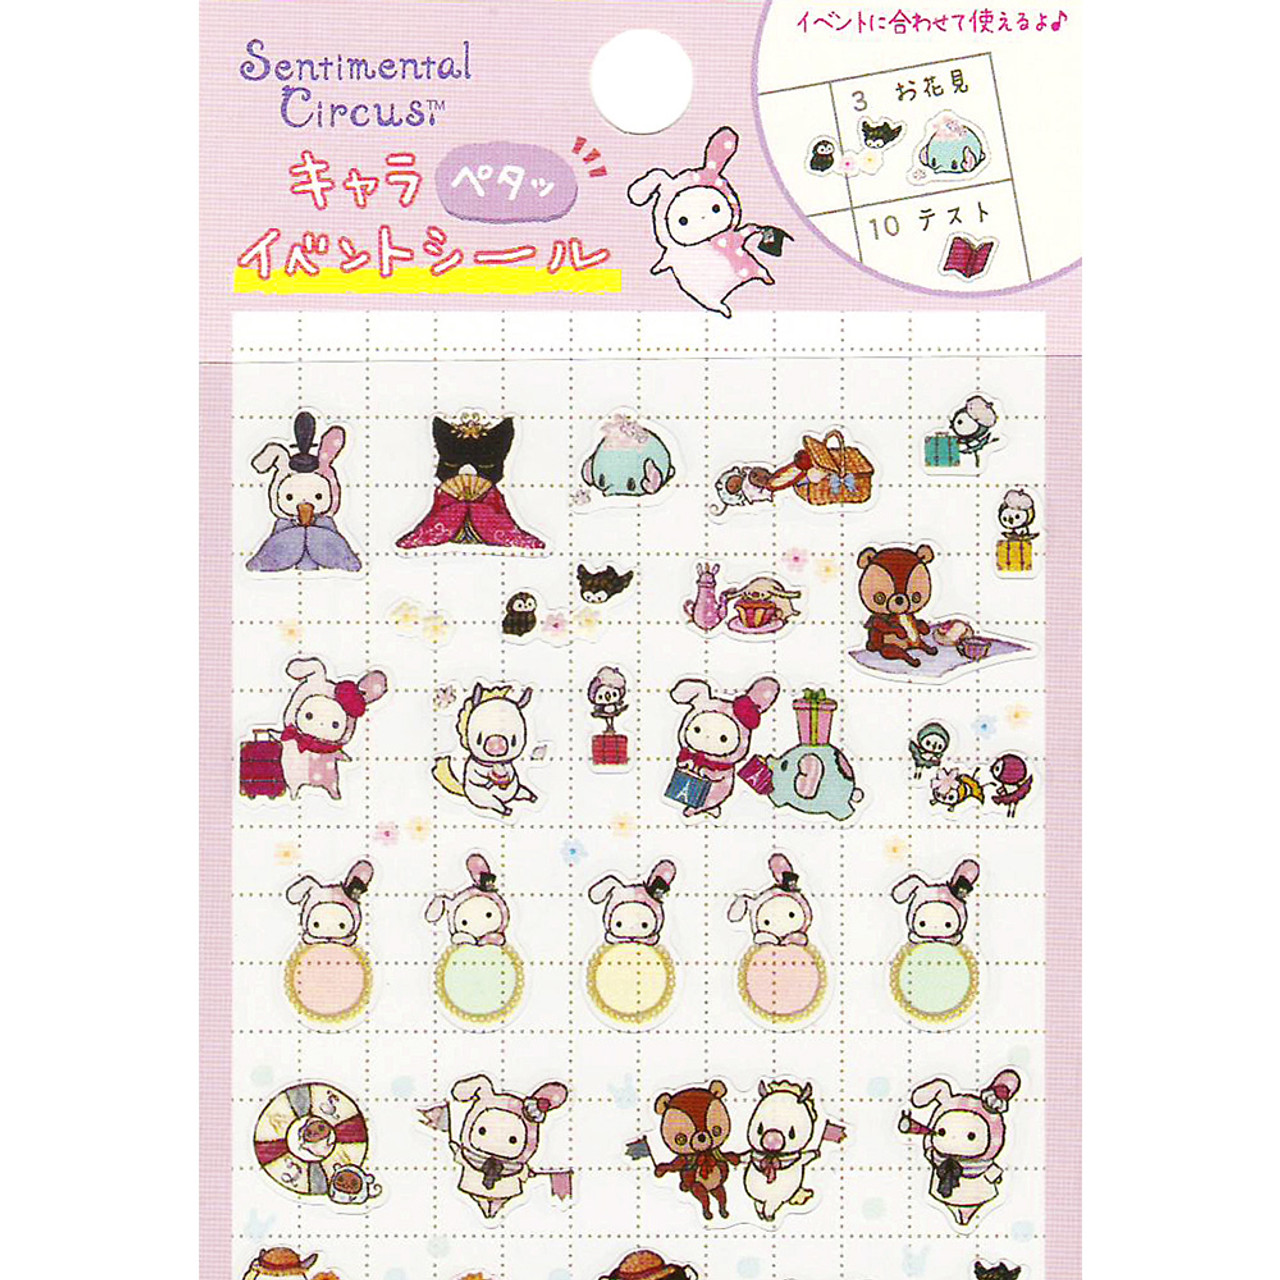 San-x Sentimental Circus Shappo Bunny Characters Events Schedule Sticker SE30605 ( Top View )